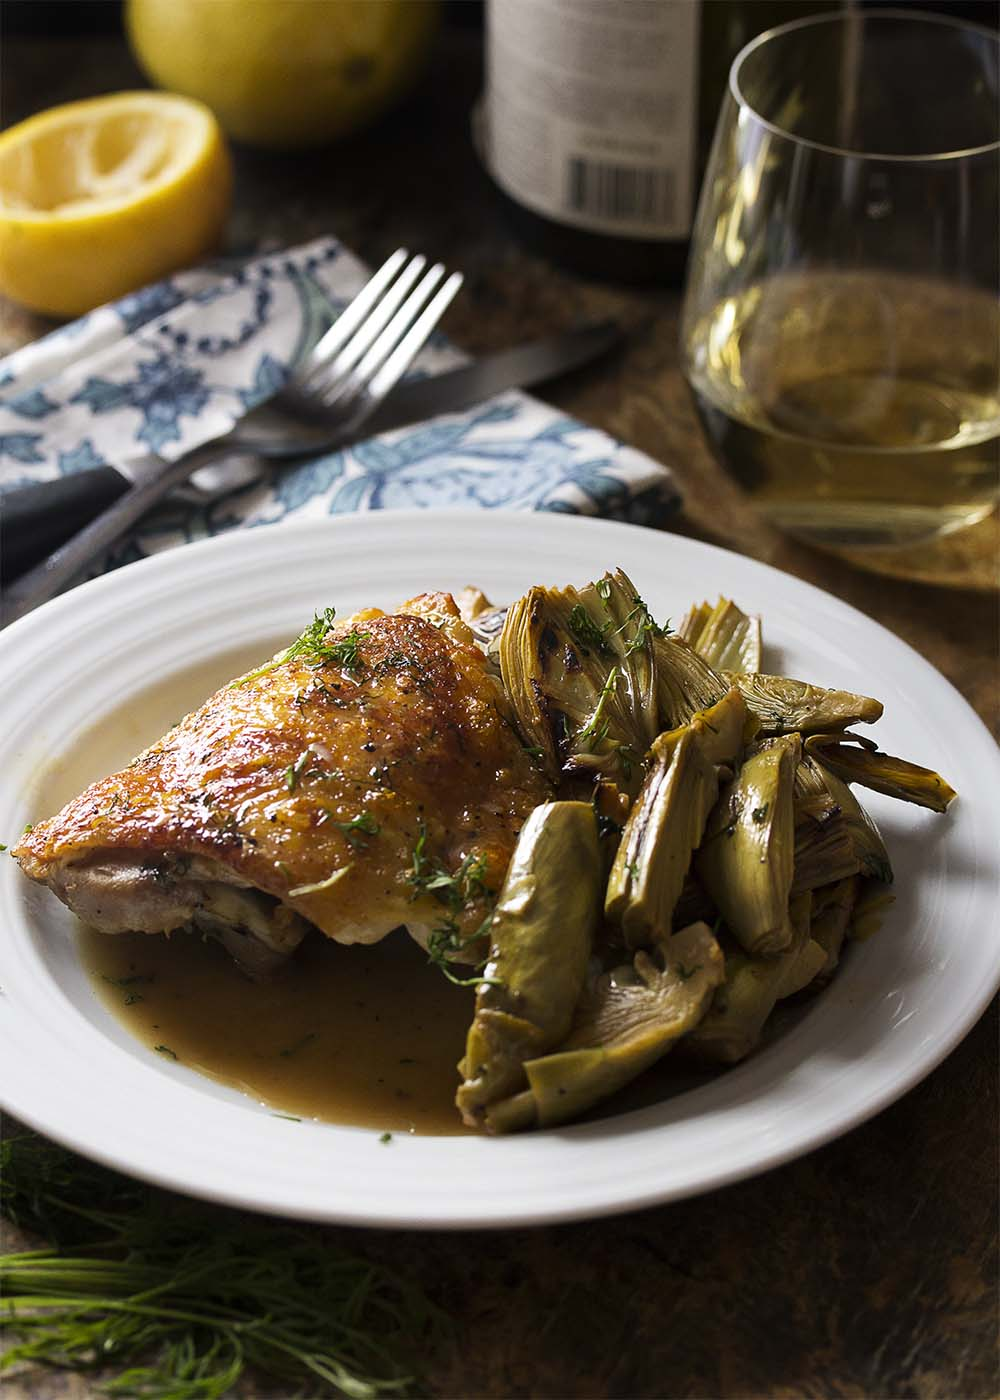 Pan roasted chicken thighs with artichokes on a plate